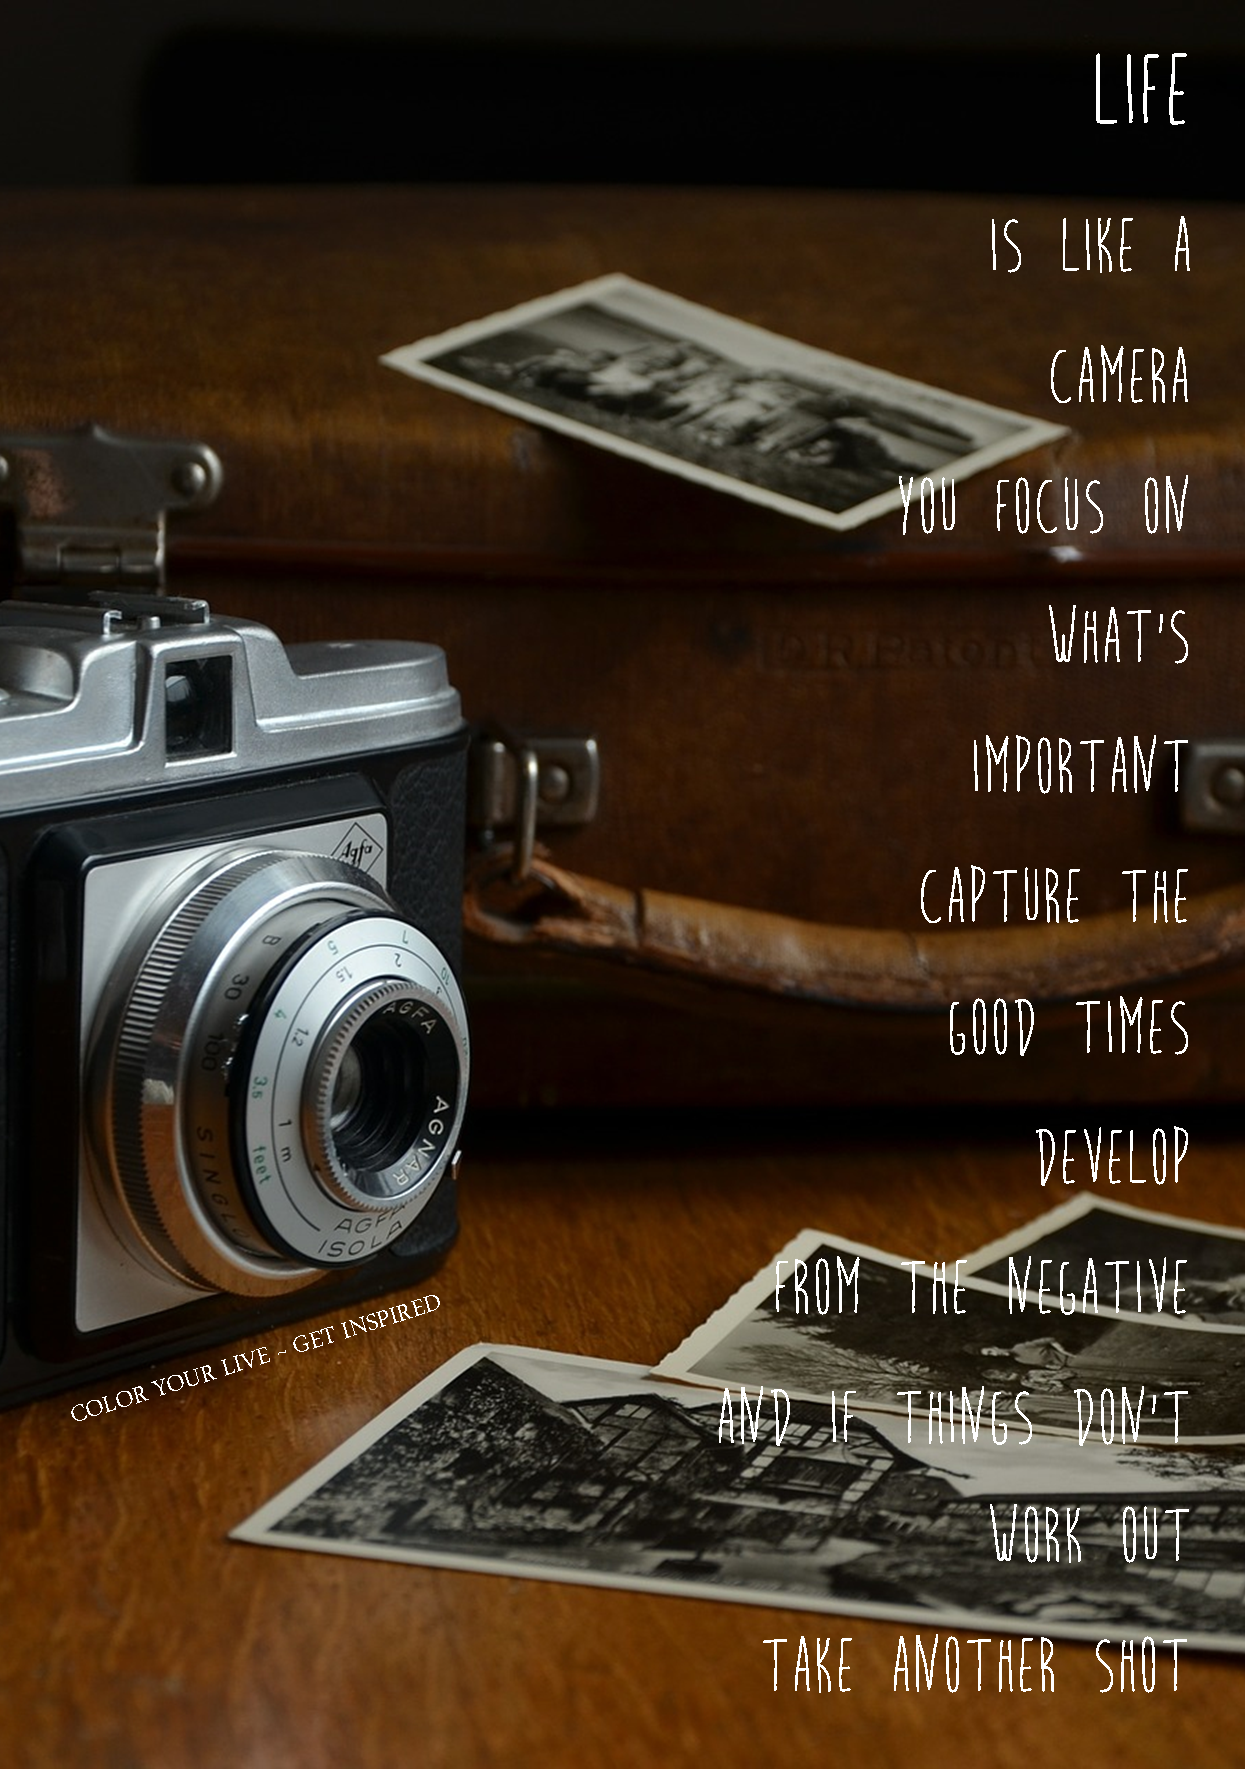 Color Your Life Quotes Life Is Like A Camera Color Your Life  Get Inspired  Quotes